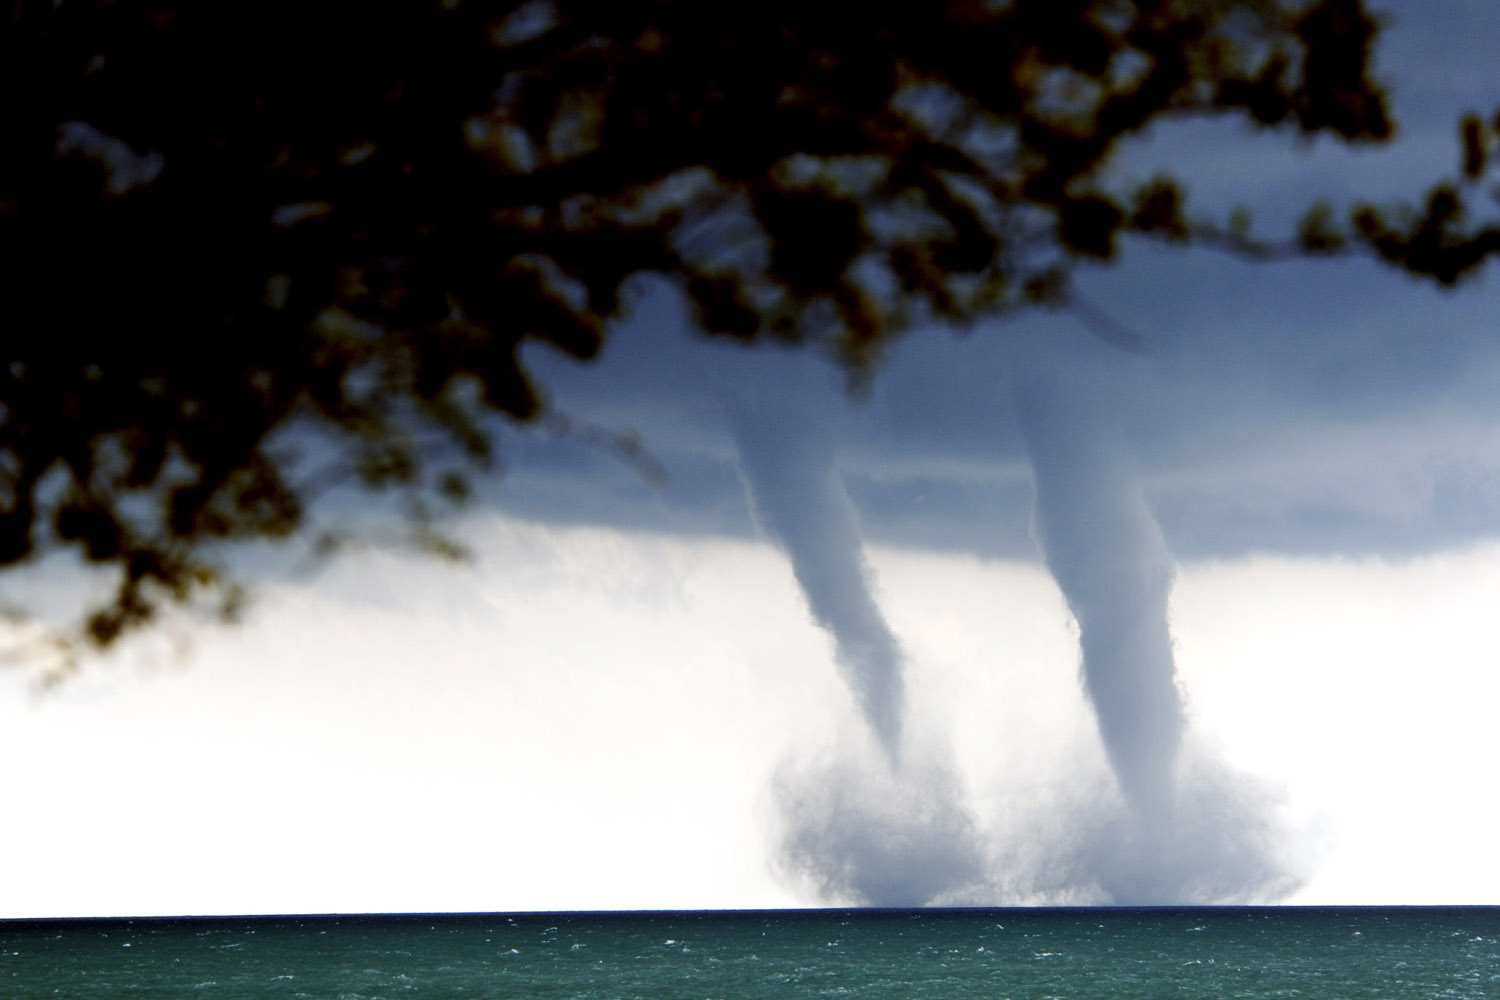 Sept. 12, 2013. A pair of water spouts form on Lake Michigan southeast of Kenosha, Wis.